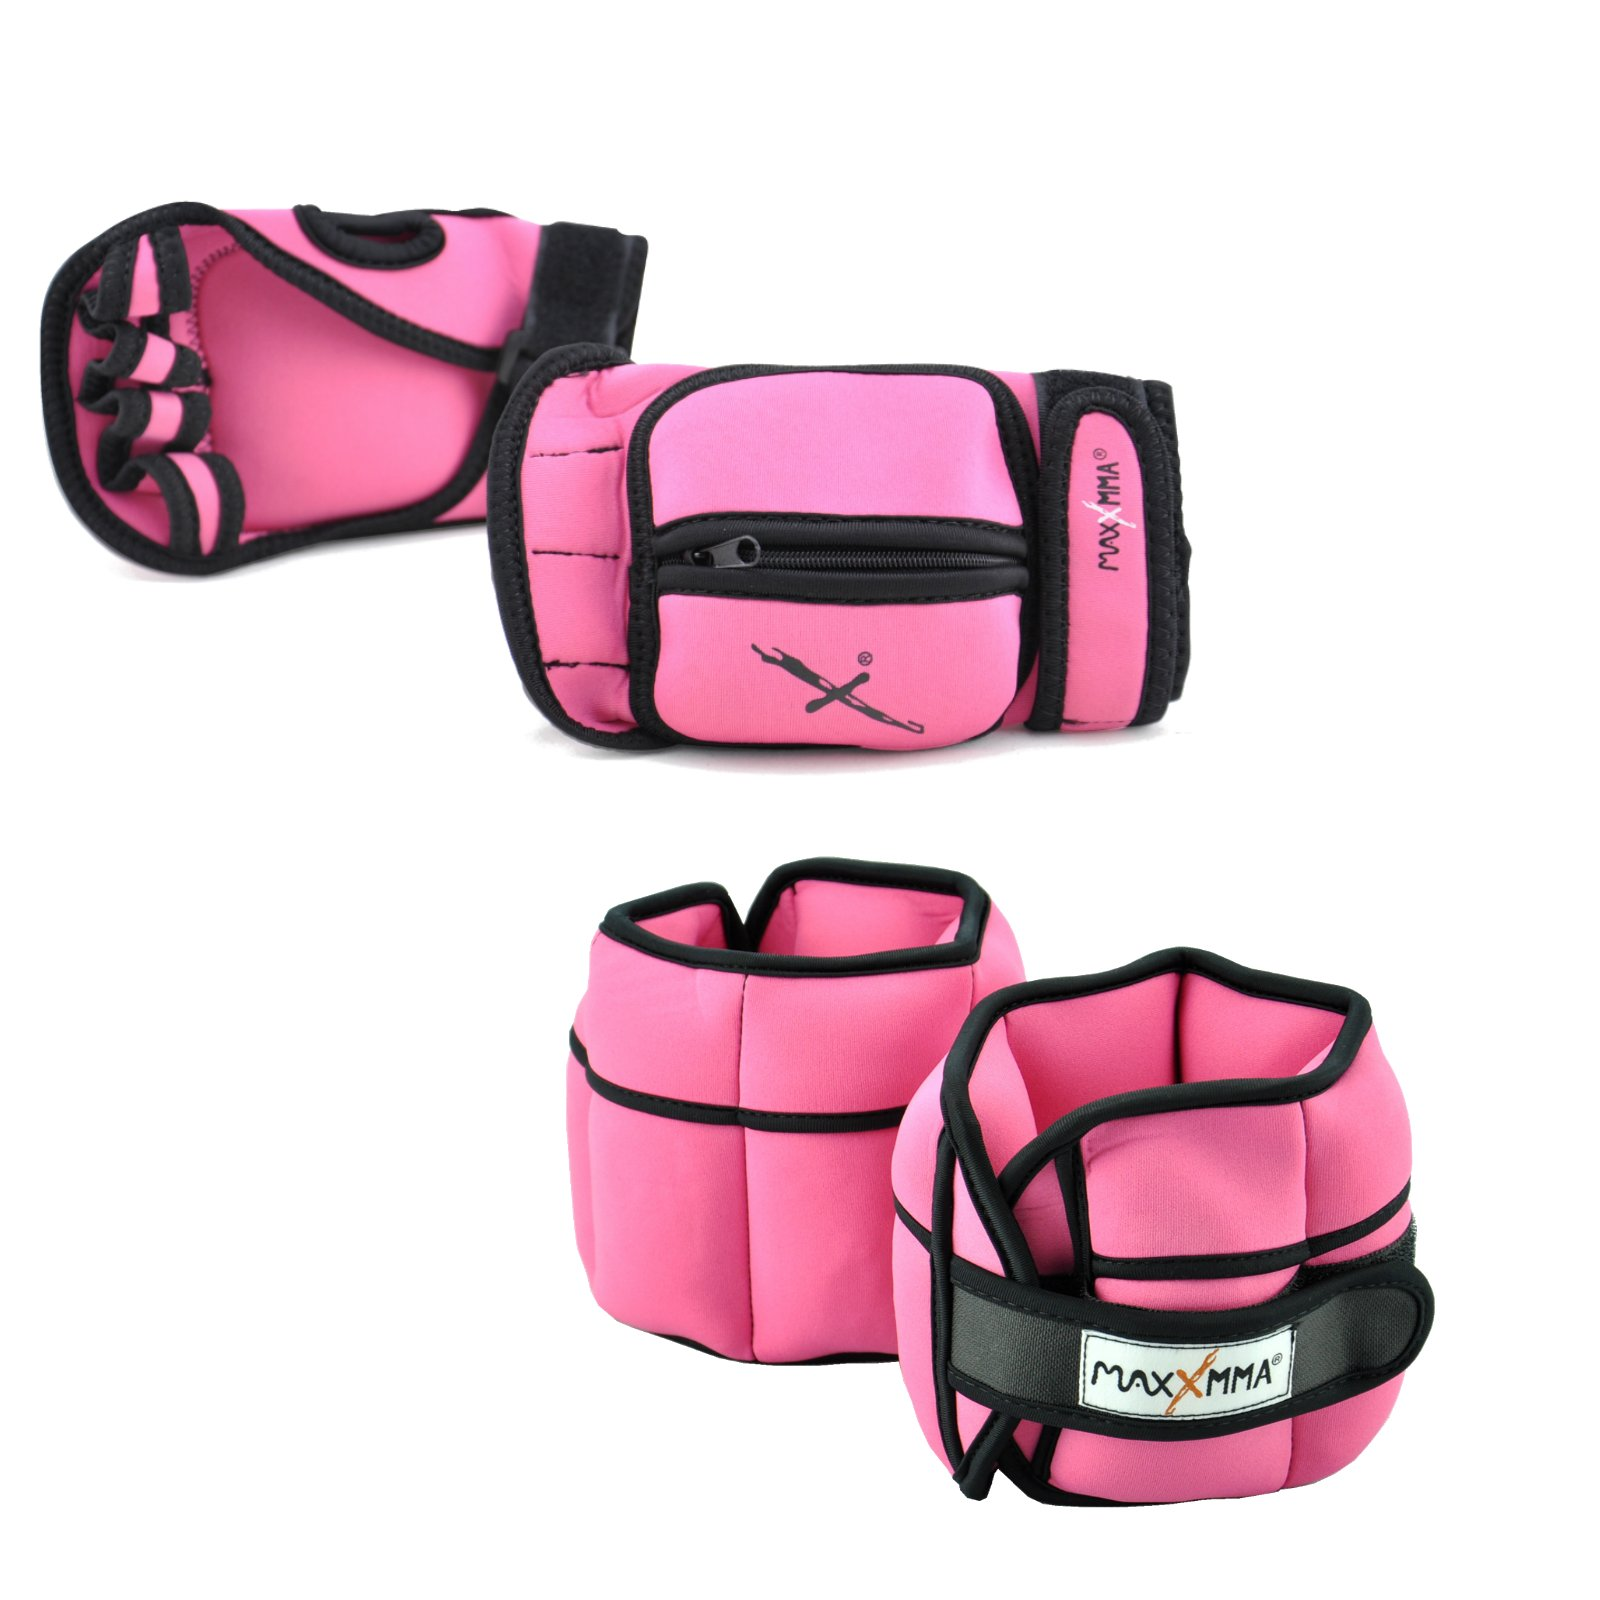 MaxxMMA 5 lbs Adjustable Ankle Weights Pair + 2 lbs Weighted Gloves (Pink)